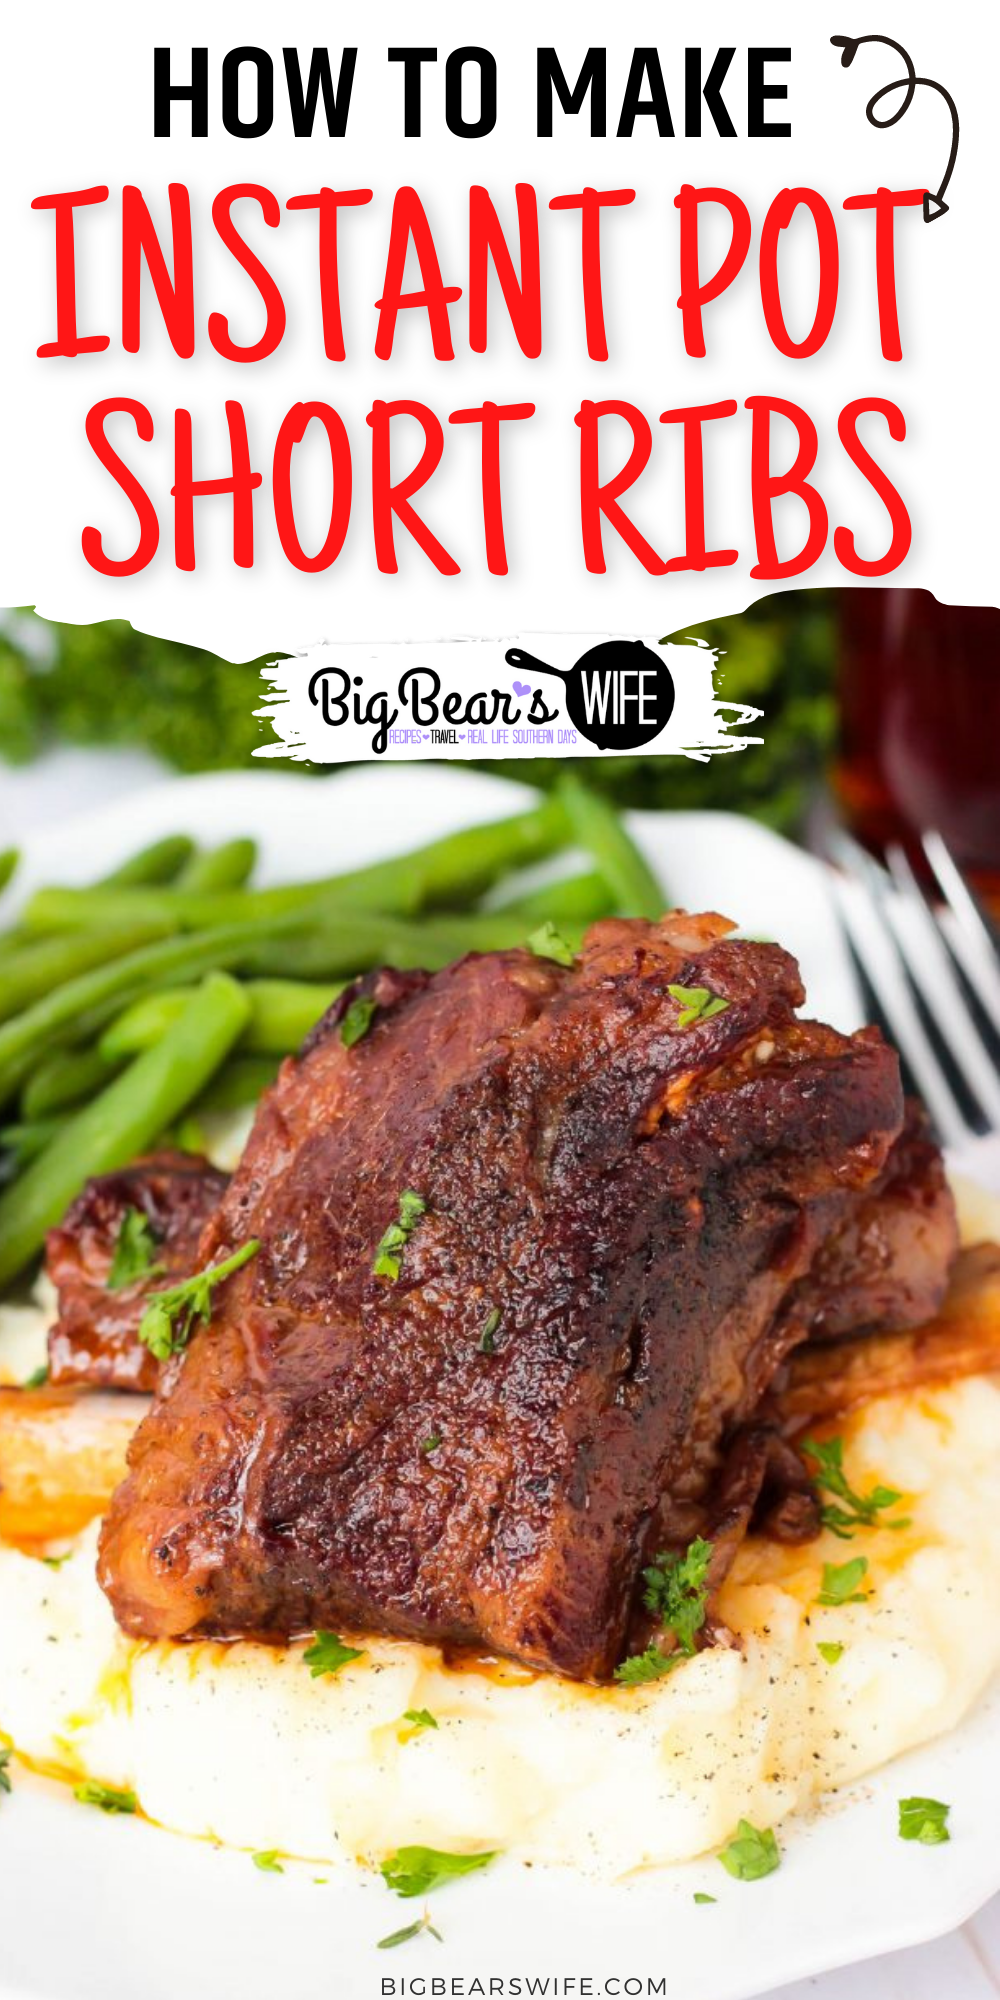 Instant Pot Short Ribs - These Instant Pot Short Ribs are my super tender and packed with tons of wonderful flavor! This recipe is my new version of my super popular Slow Cooker Short Rib recipe that I've adapted to work with the Instant Pot electric pressure cooker! #InstantPot #ShortRib #Recipe via @bigbearswife